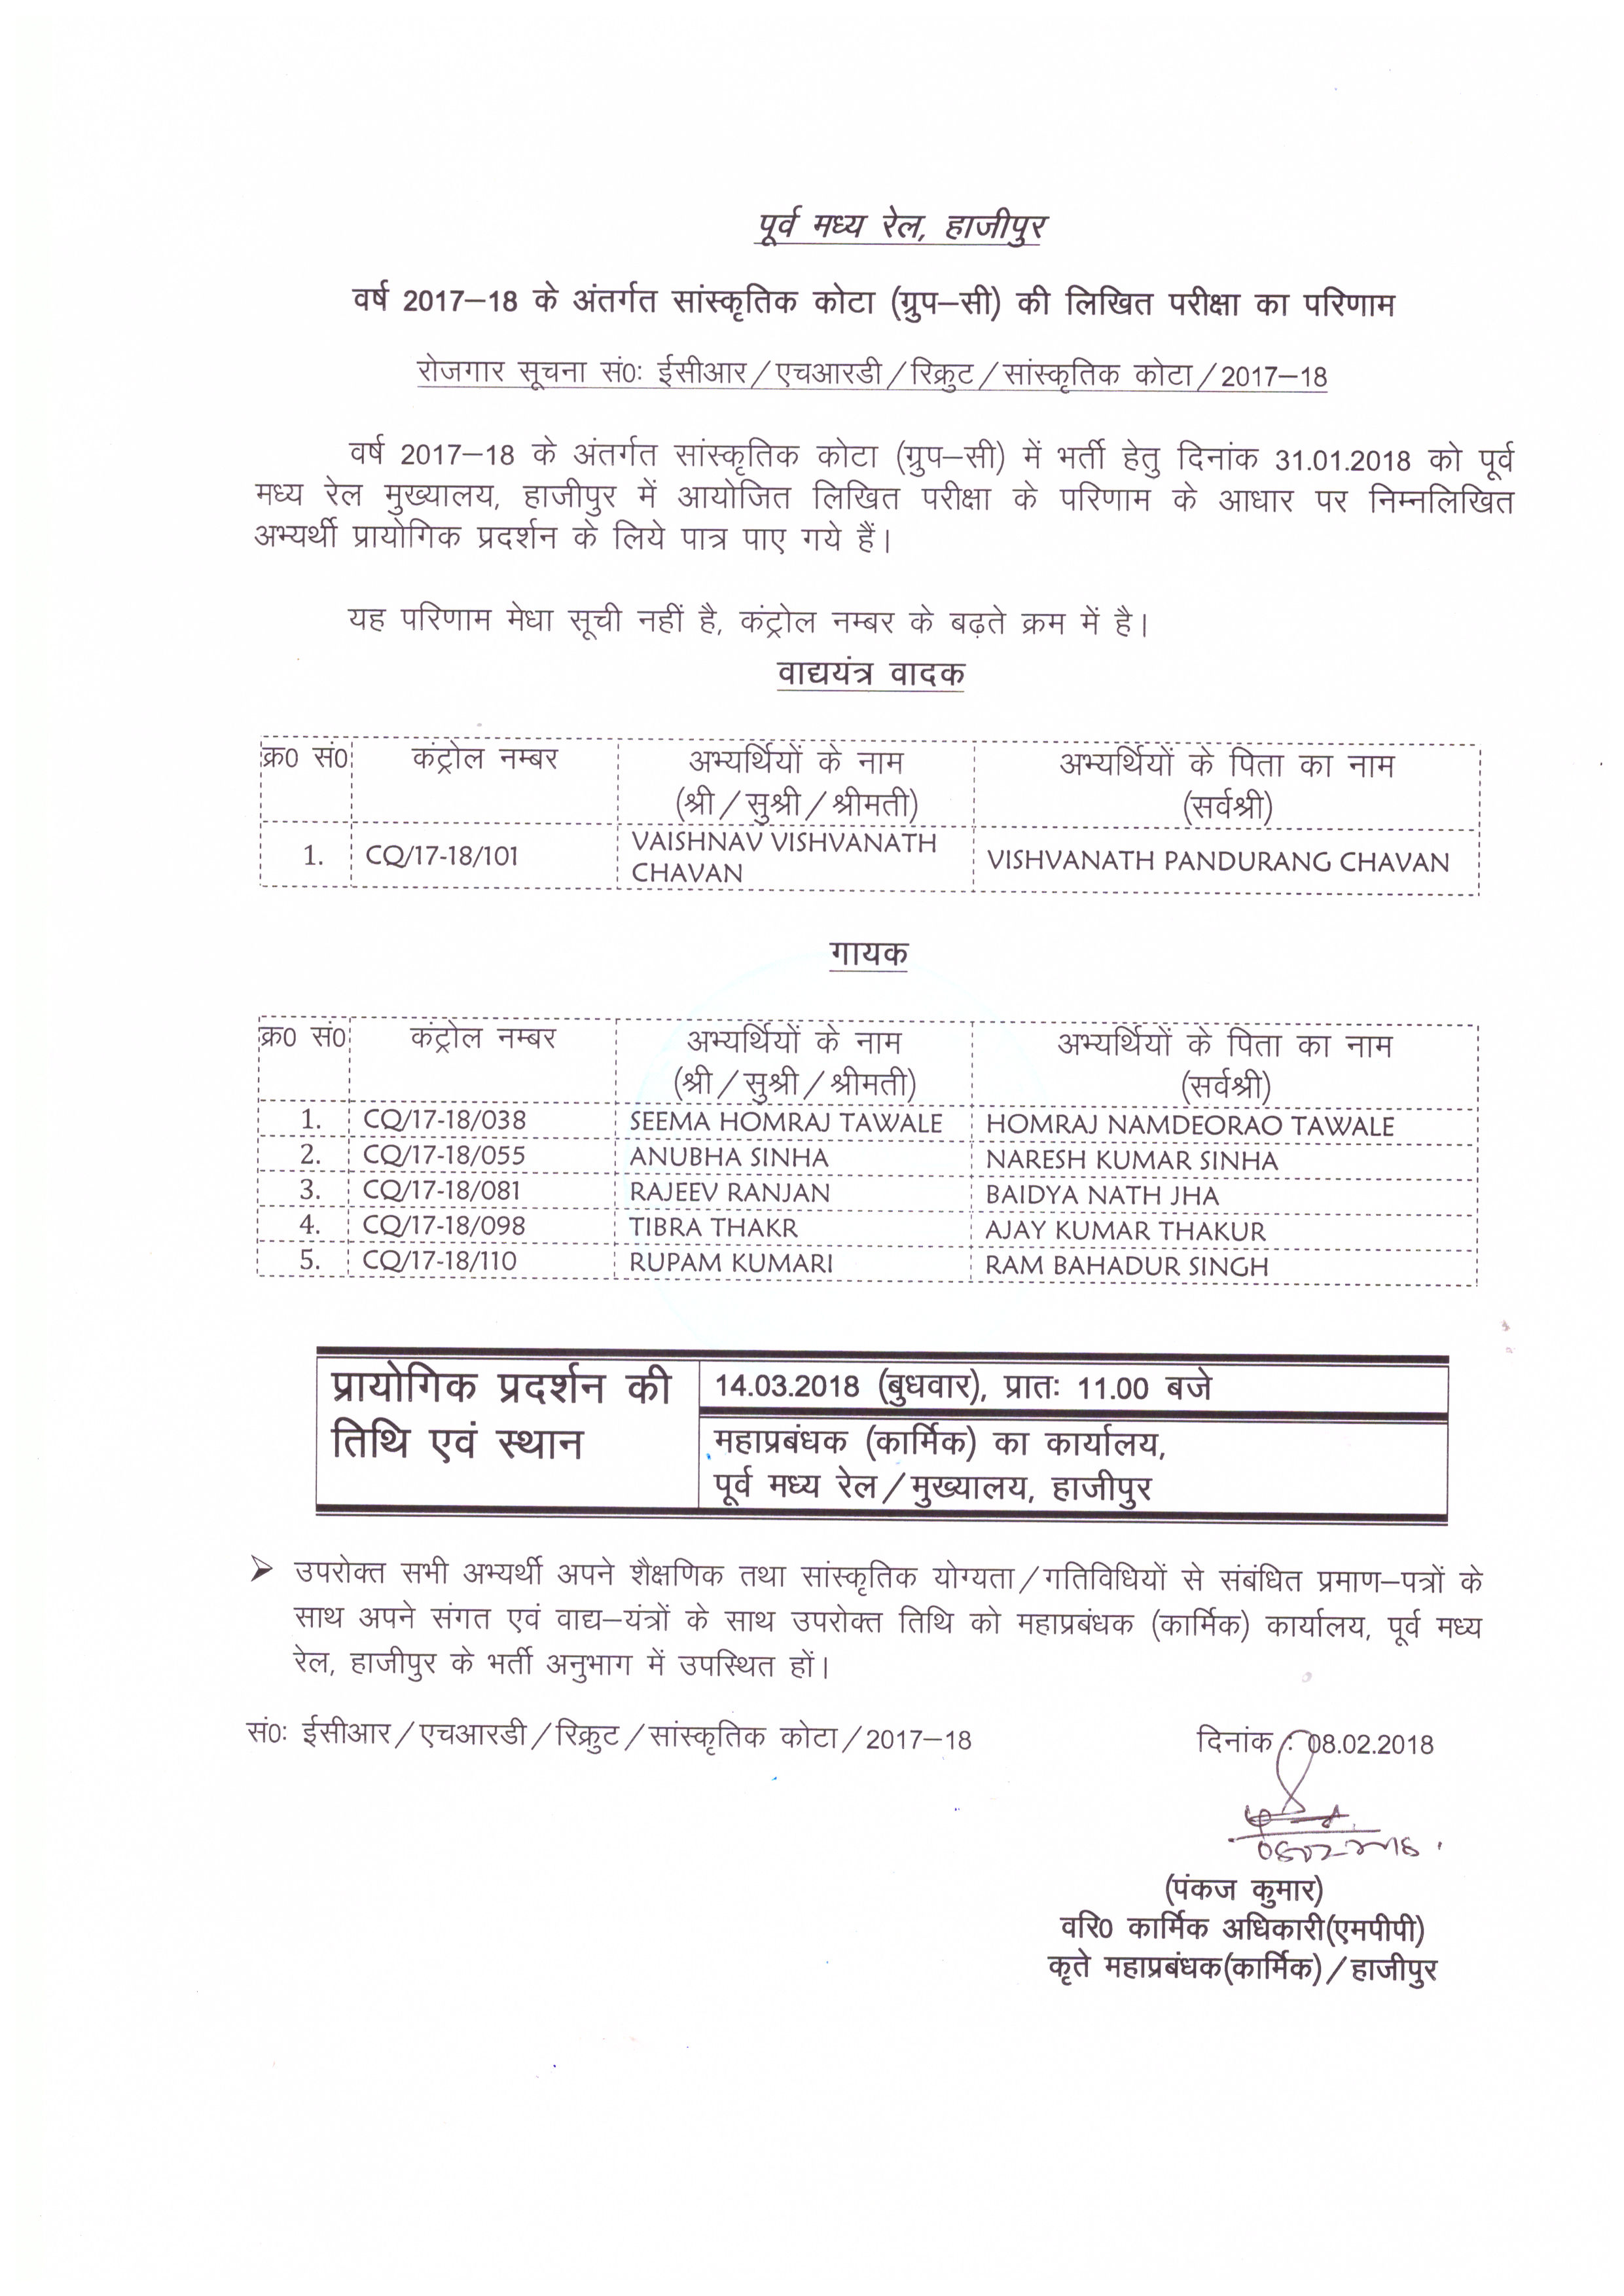 hal entrance exam 2017